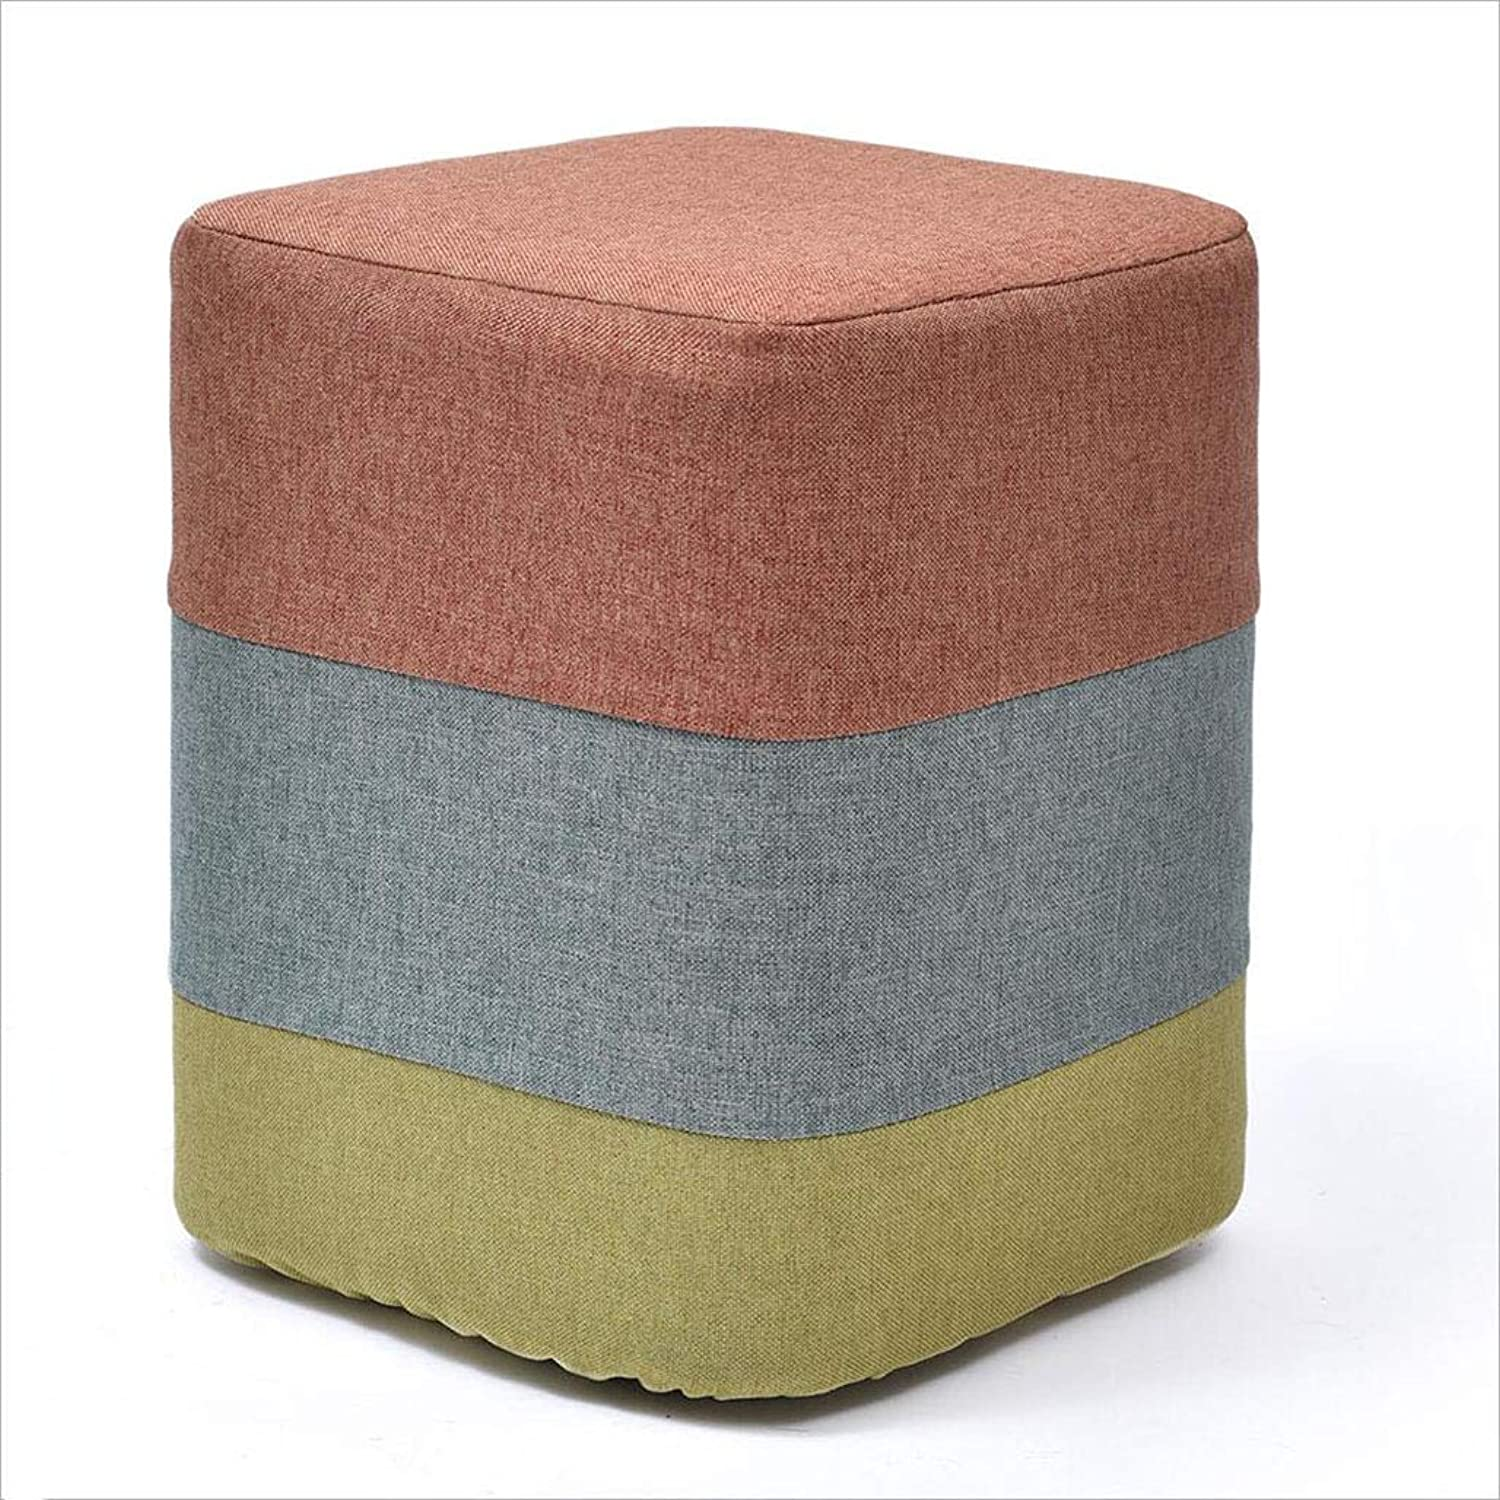 Solid Wood shoes Bench Fashion Creative Sofa Bench Small Bench Household Low Stool Stool Fabric Stool [Square and Round Models Optional, 35CM],squareorange